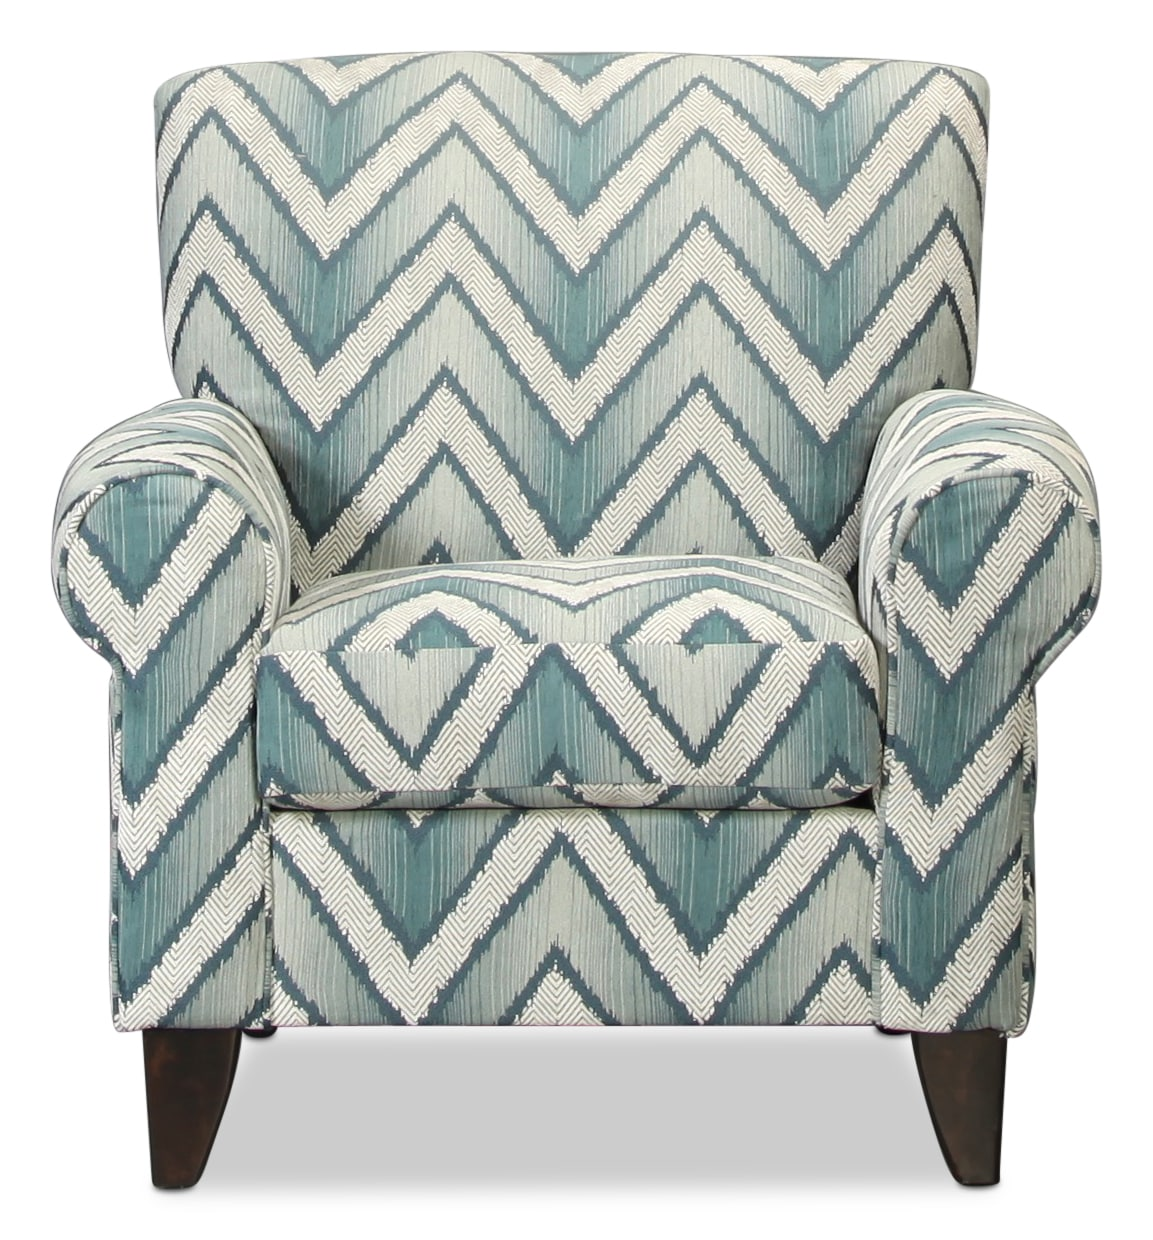 Sunset Beach Gel Accent Chair - Flax